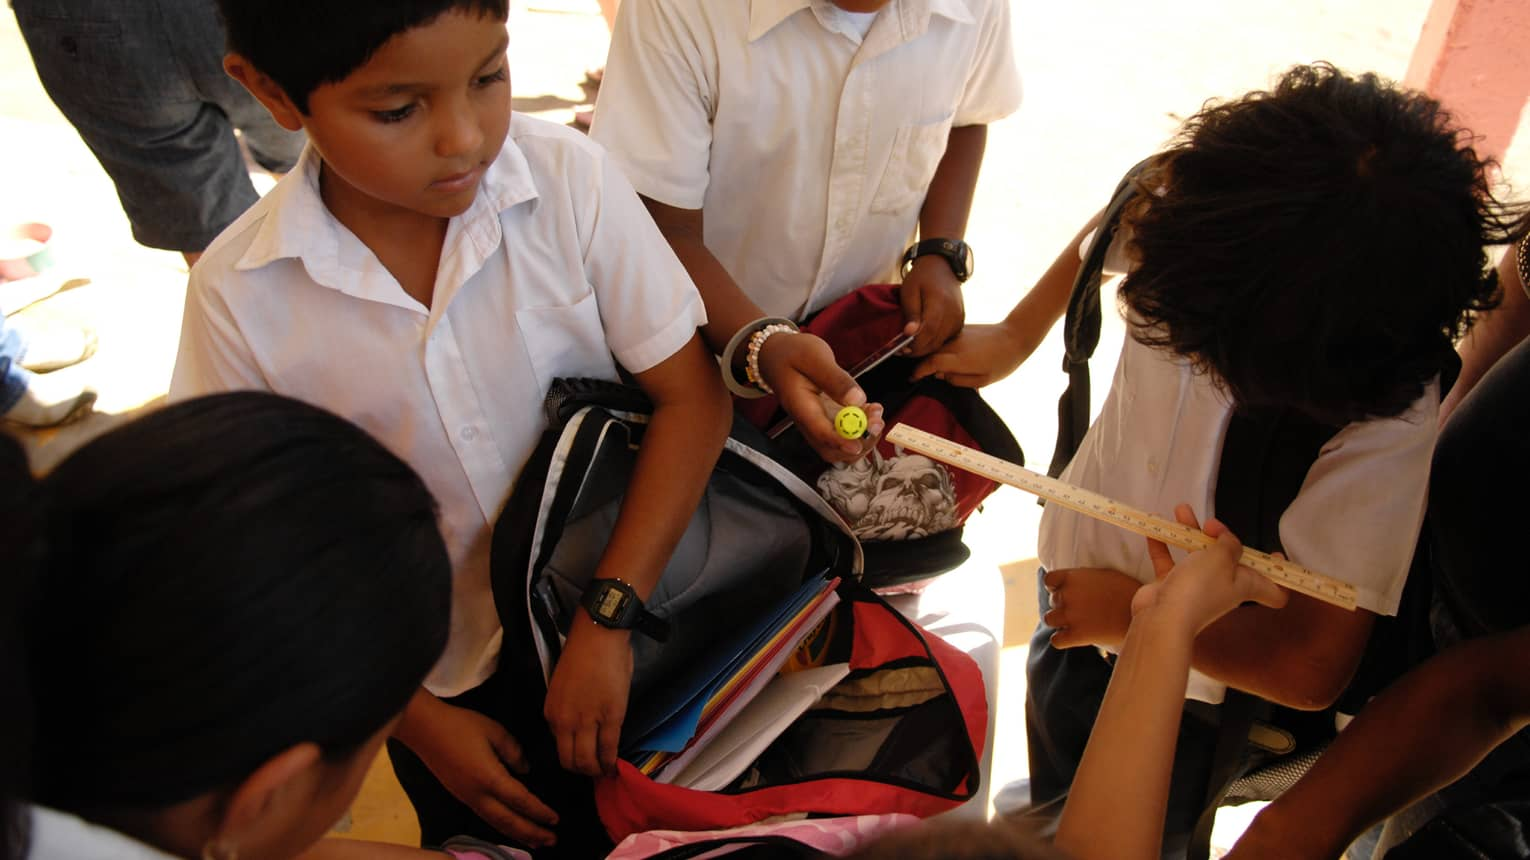 Young kids in white school uniforms sort through backpacks